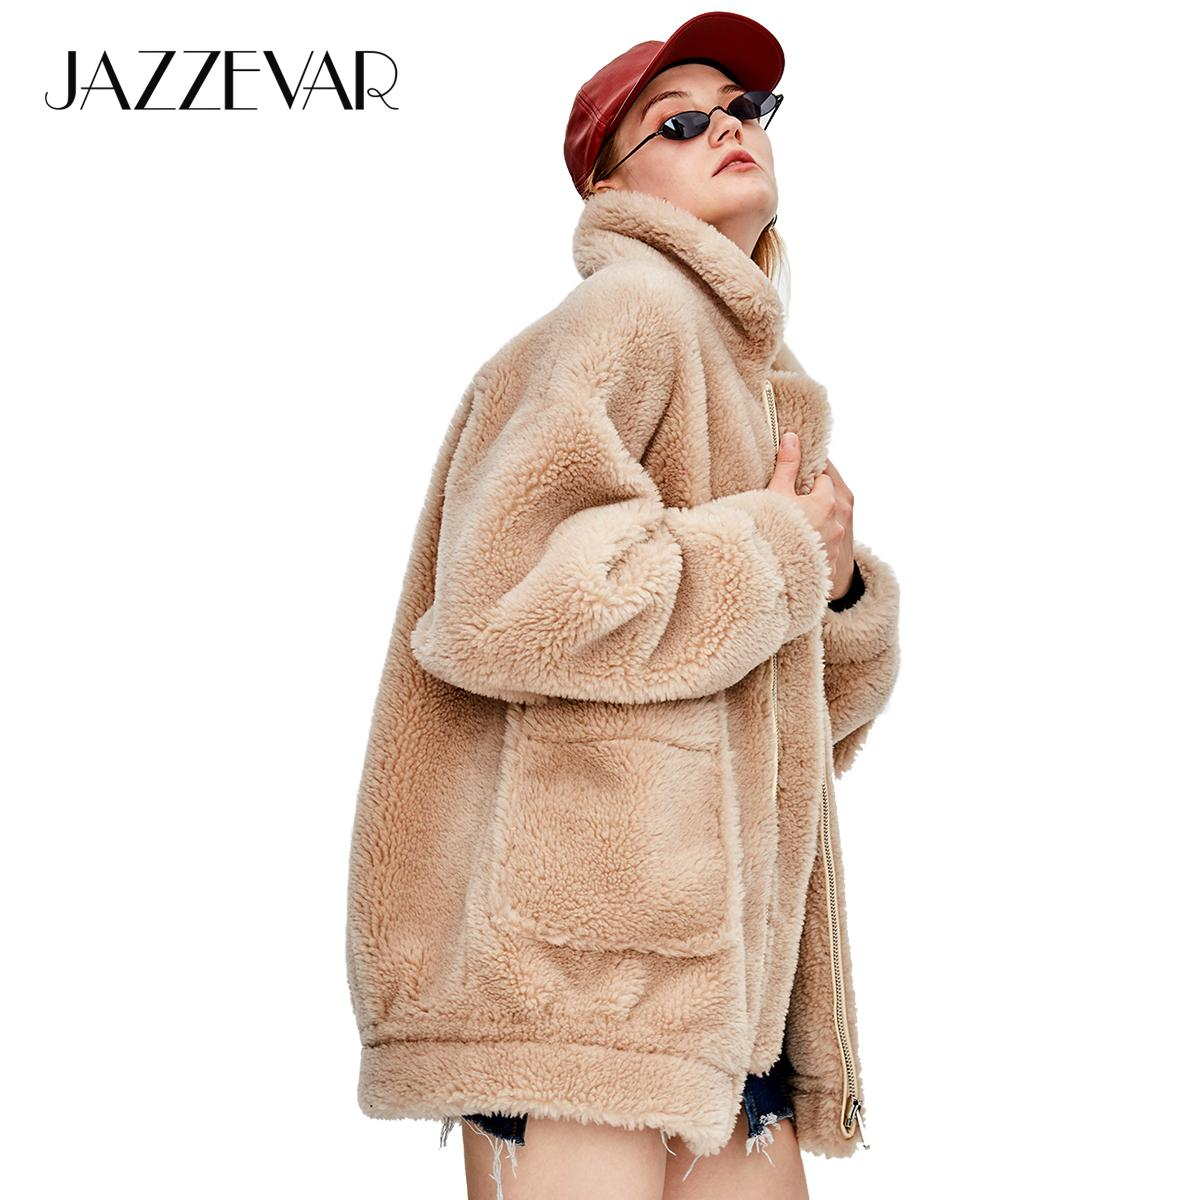 a3bc319fed1 JAZZEVAR 2018 Winter New Fashion Street Womens Teddy Bear Icon Coat Real  Sheep Fur Oversized Winter Jacket Thick Warm Outerwear S18101301 Ladies  Jackets ...